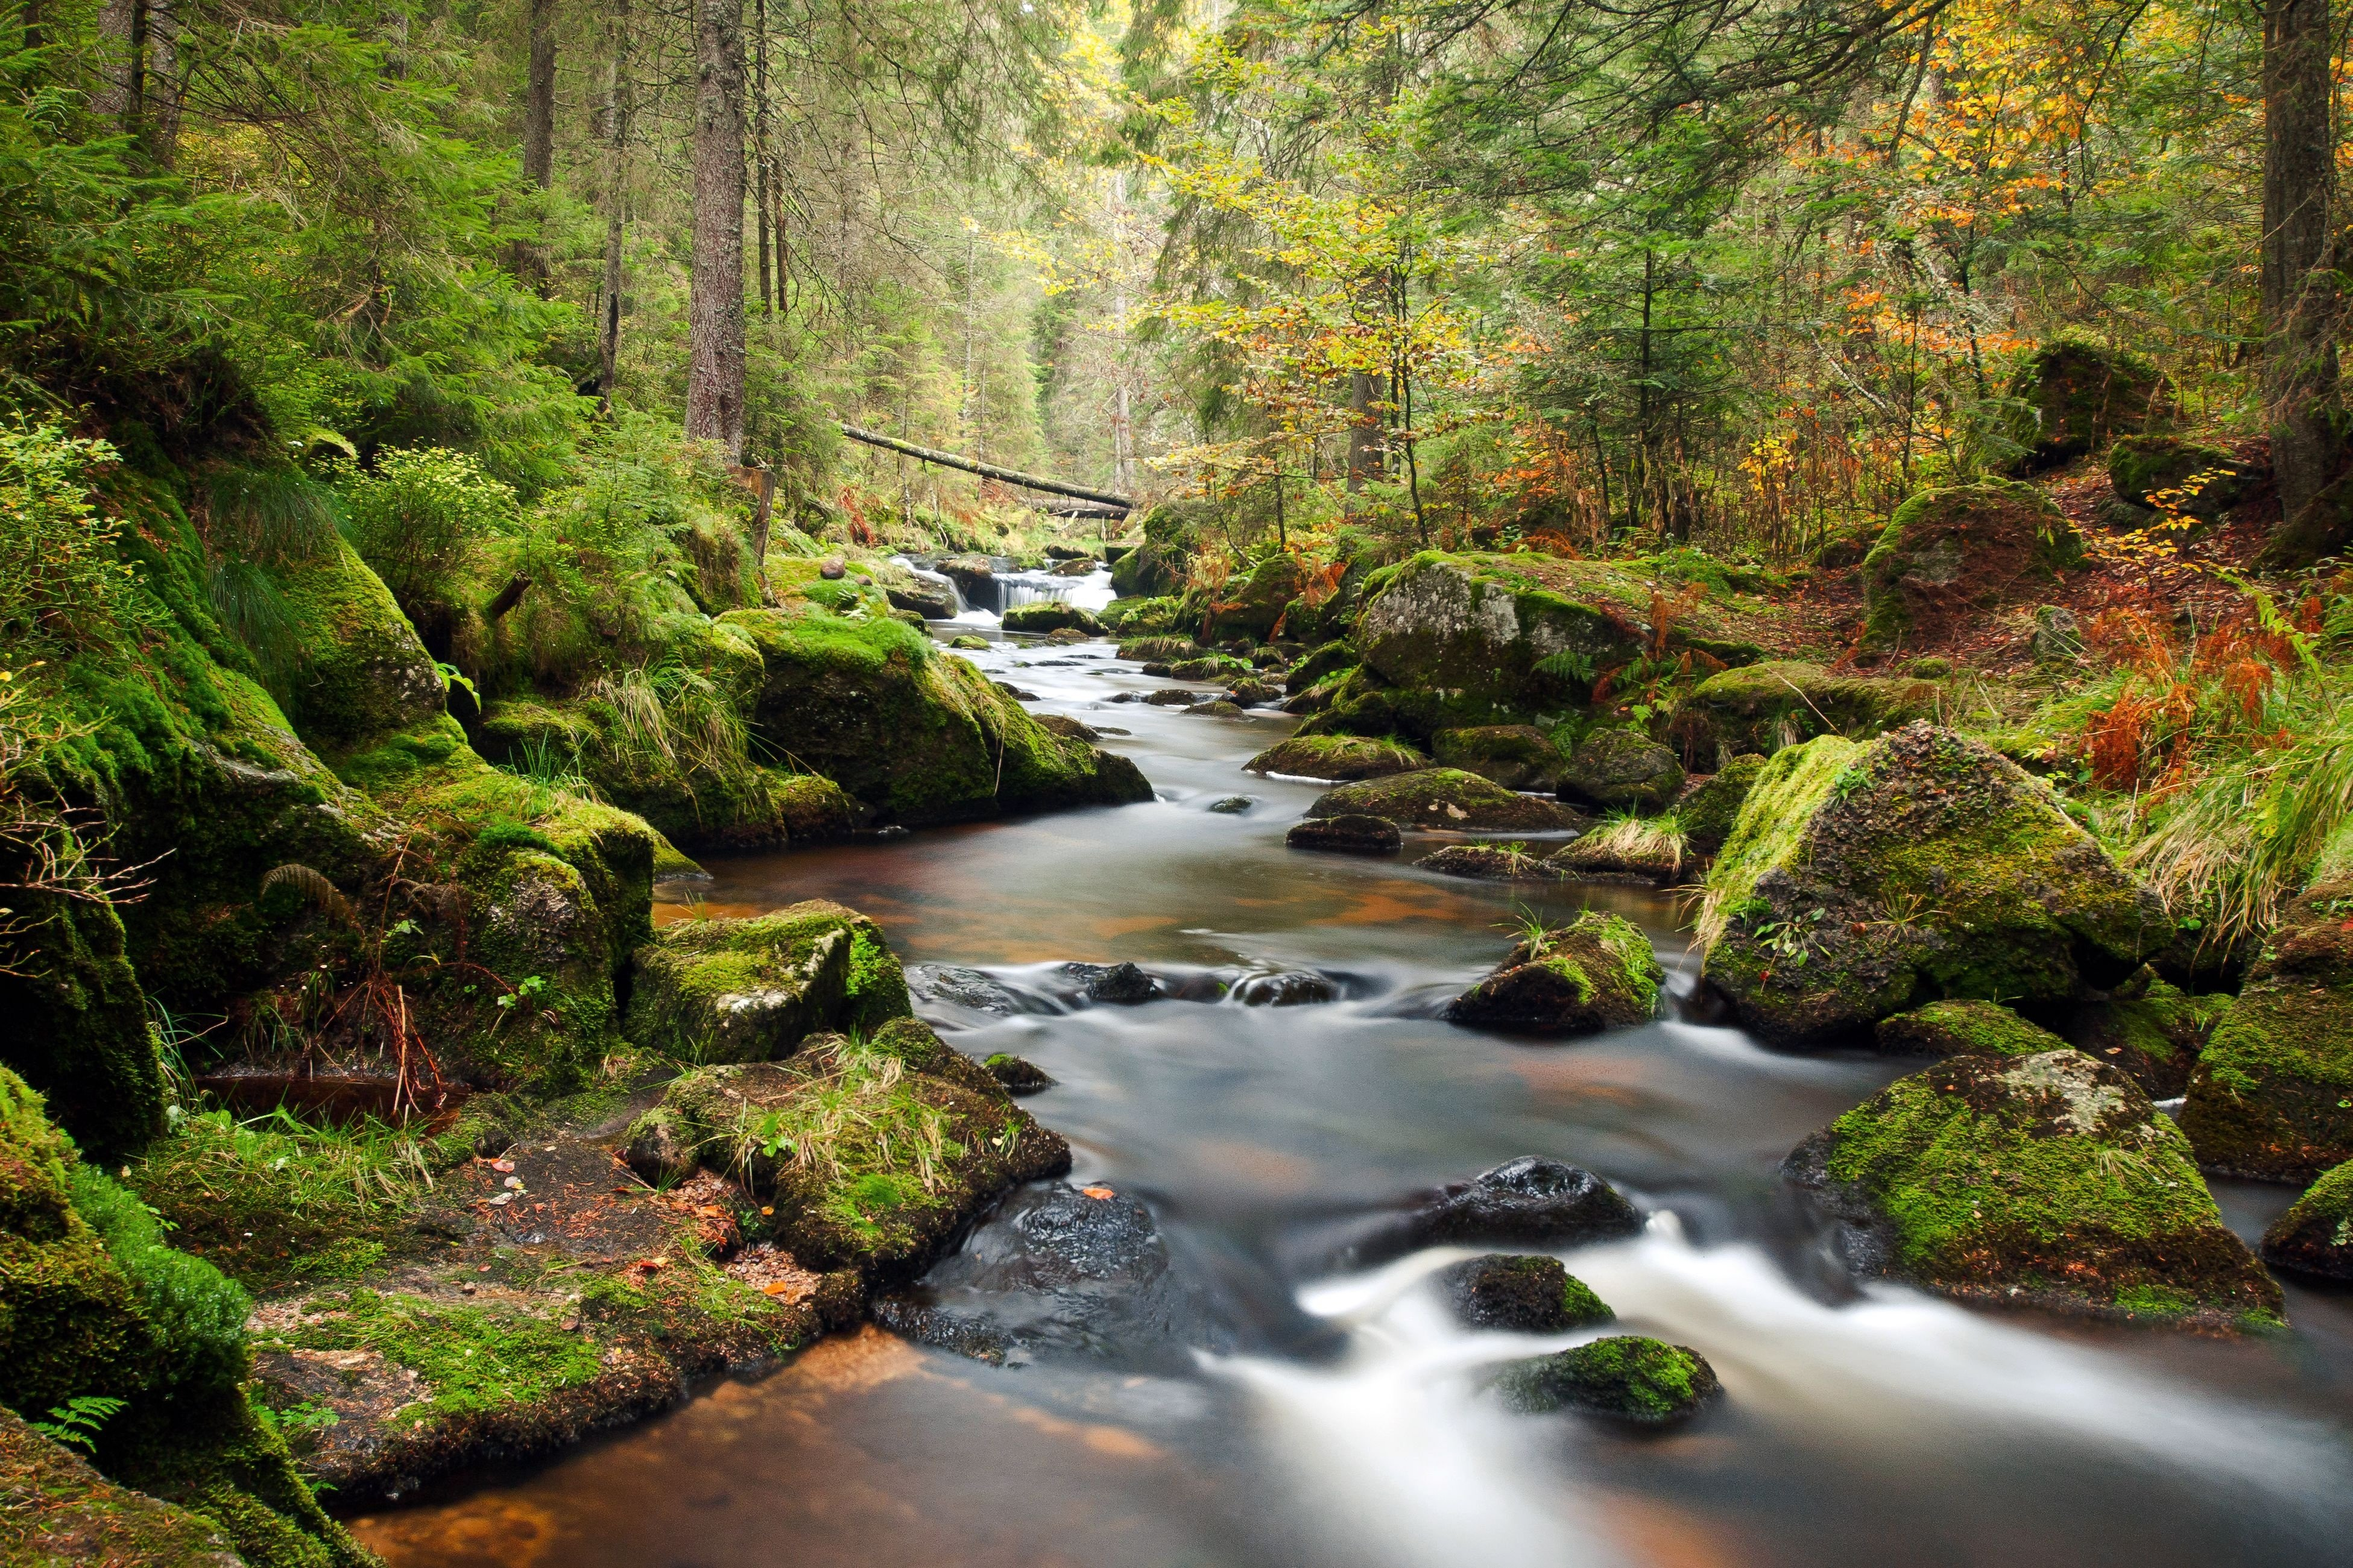 Forest River Background Wallpaper Hd Photos Rivers Nature For Pc ...